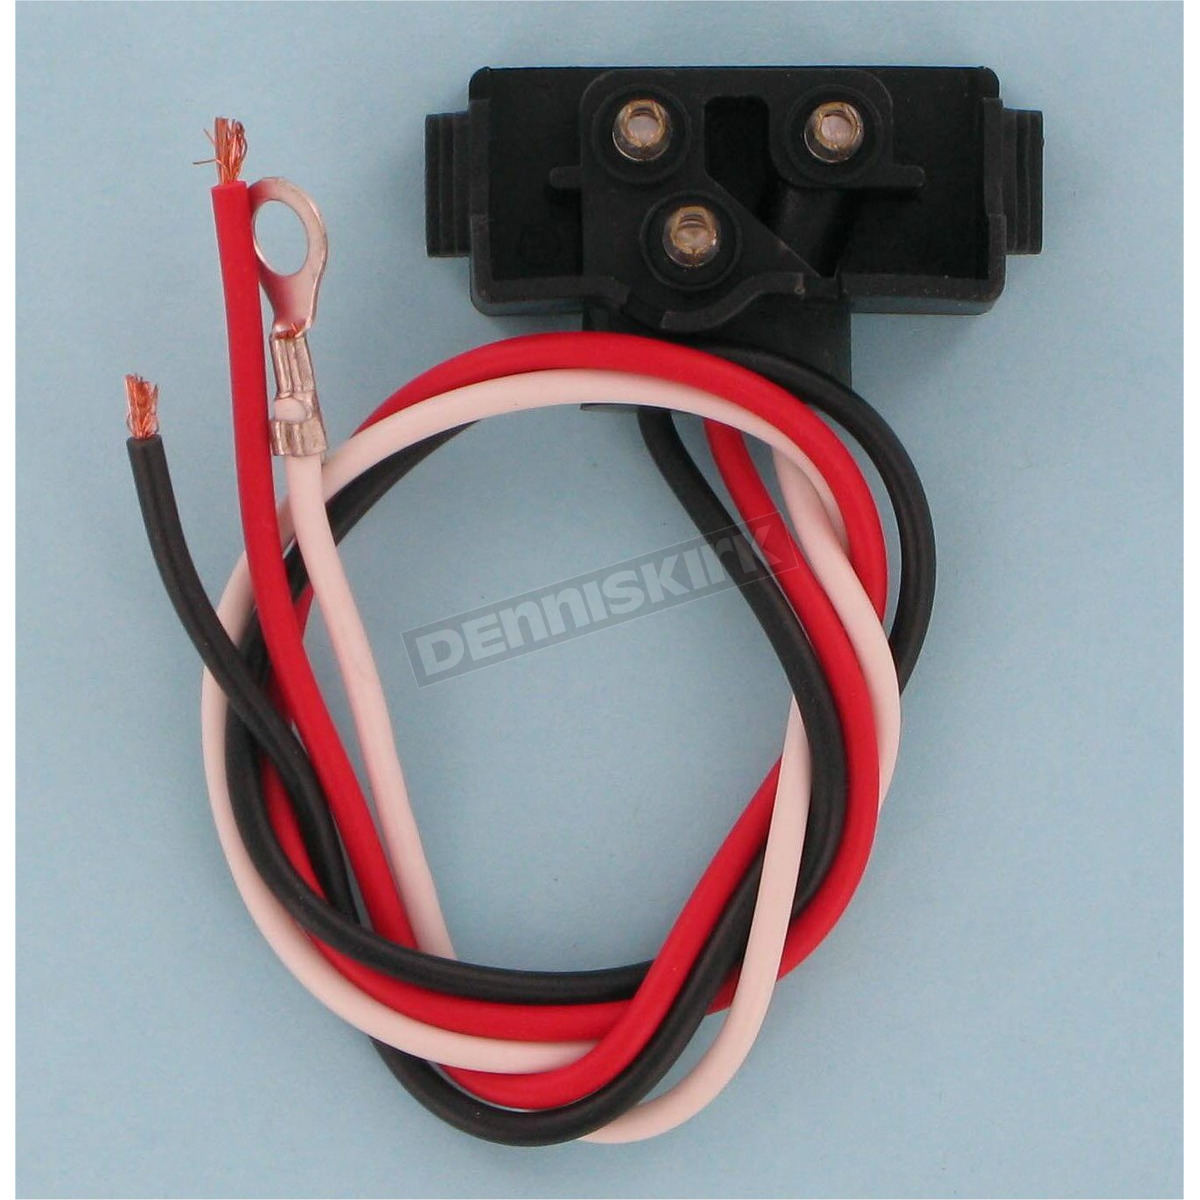 Dirt Bike Tail Light Wiring - Honoursboards.co.uk